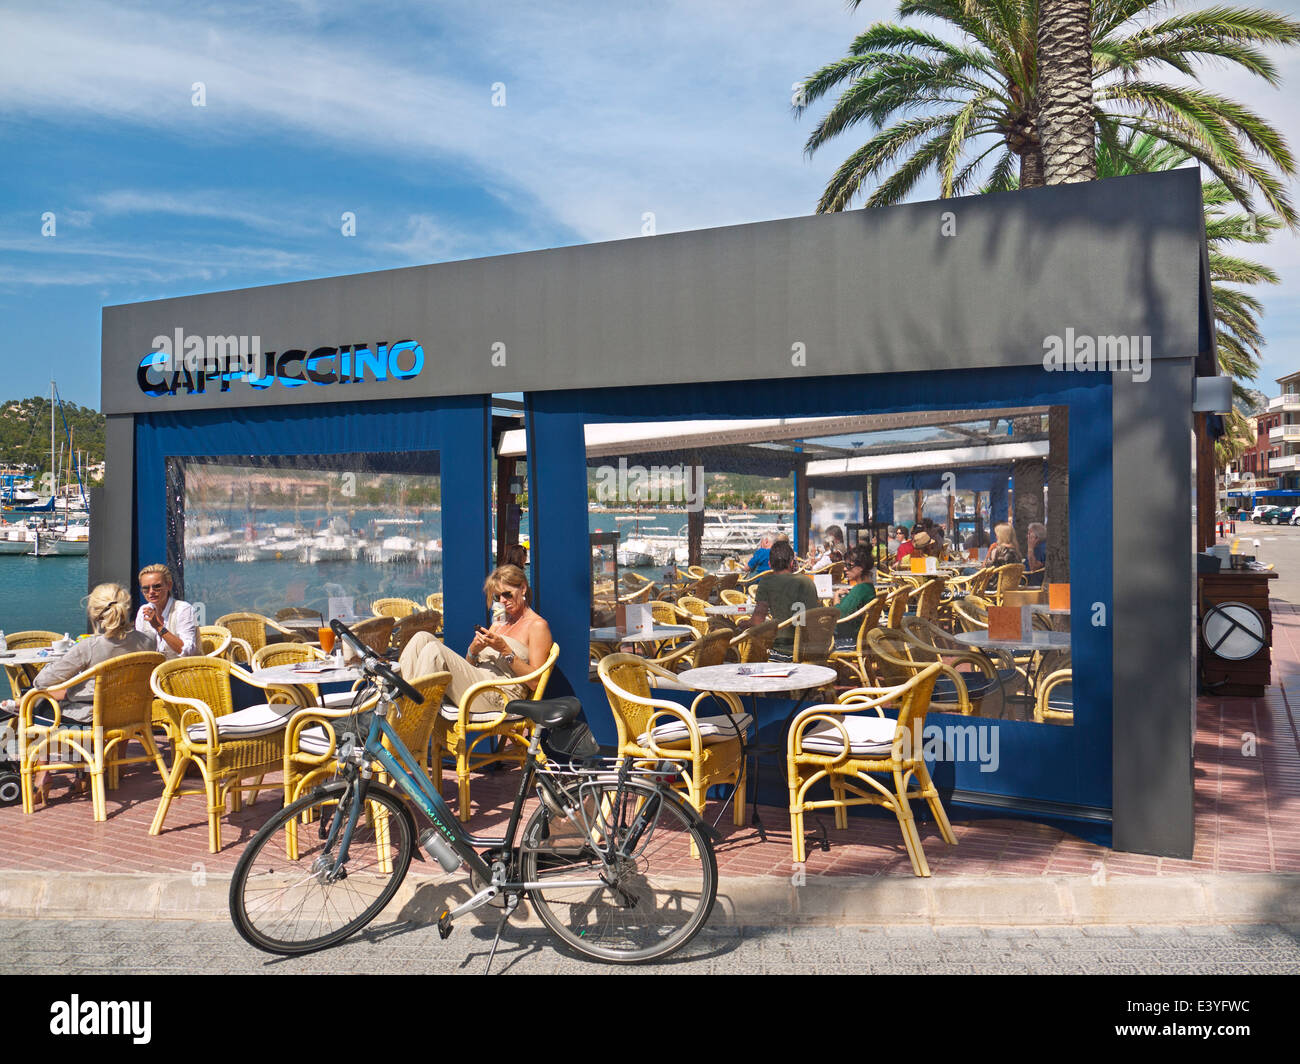 ANDRATX MALLORCA BAR Coast alfresco luxury Cappuccino Restaurant and bar in Puerto Andratx Mallorca Balearic Islands - Stock Image